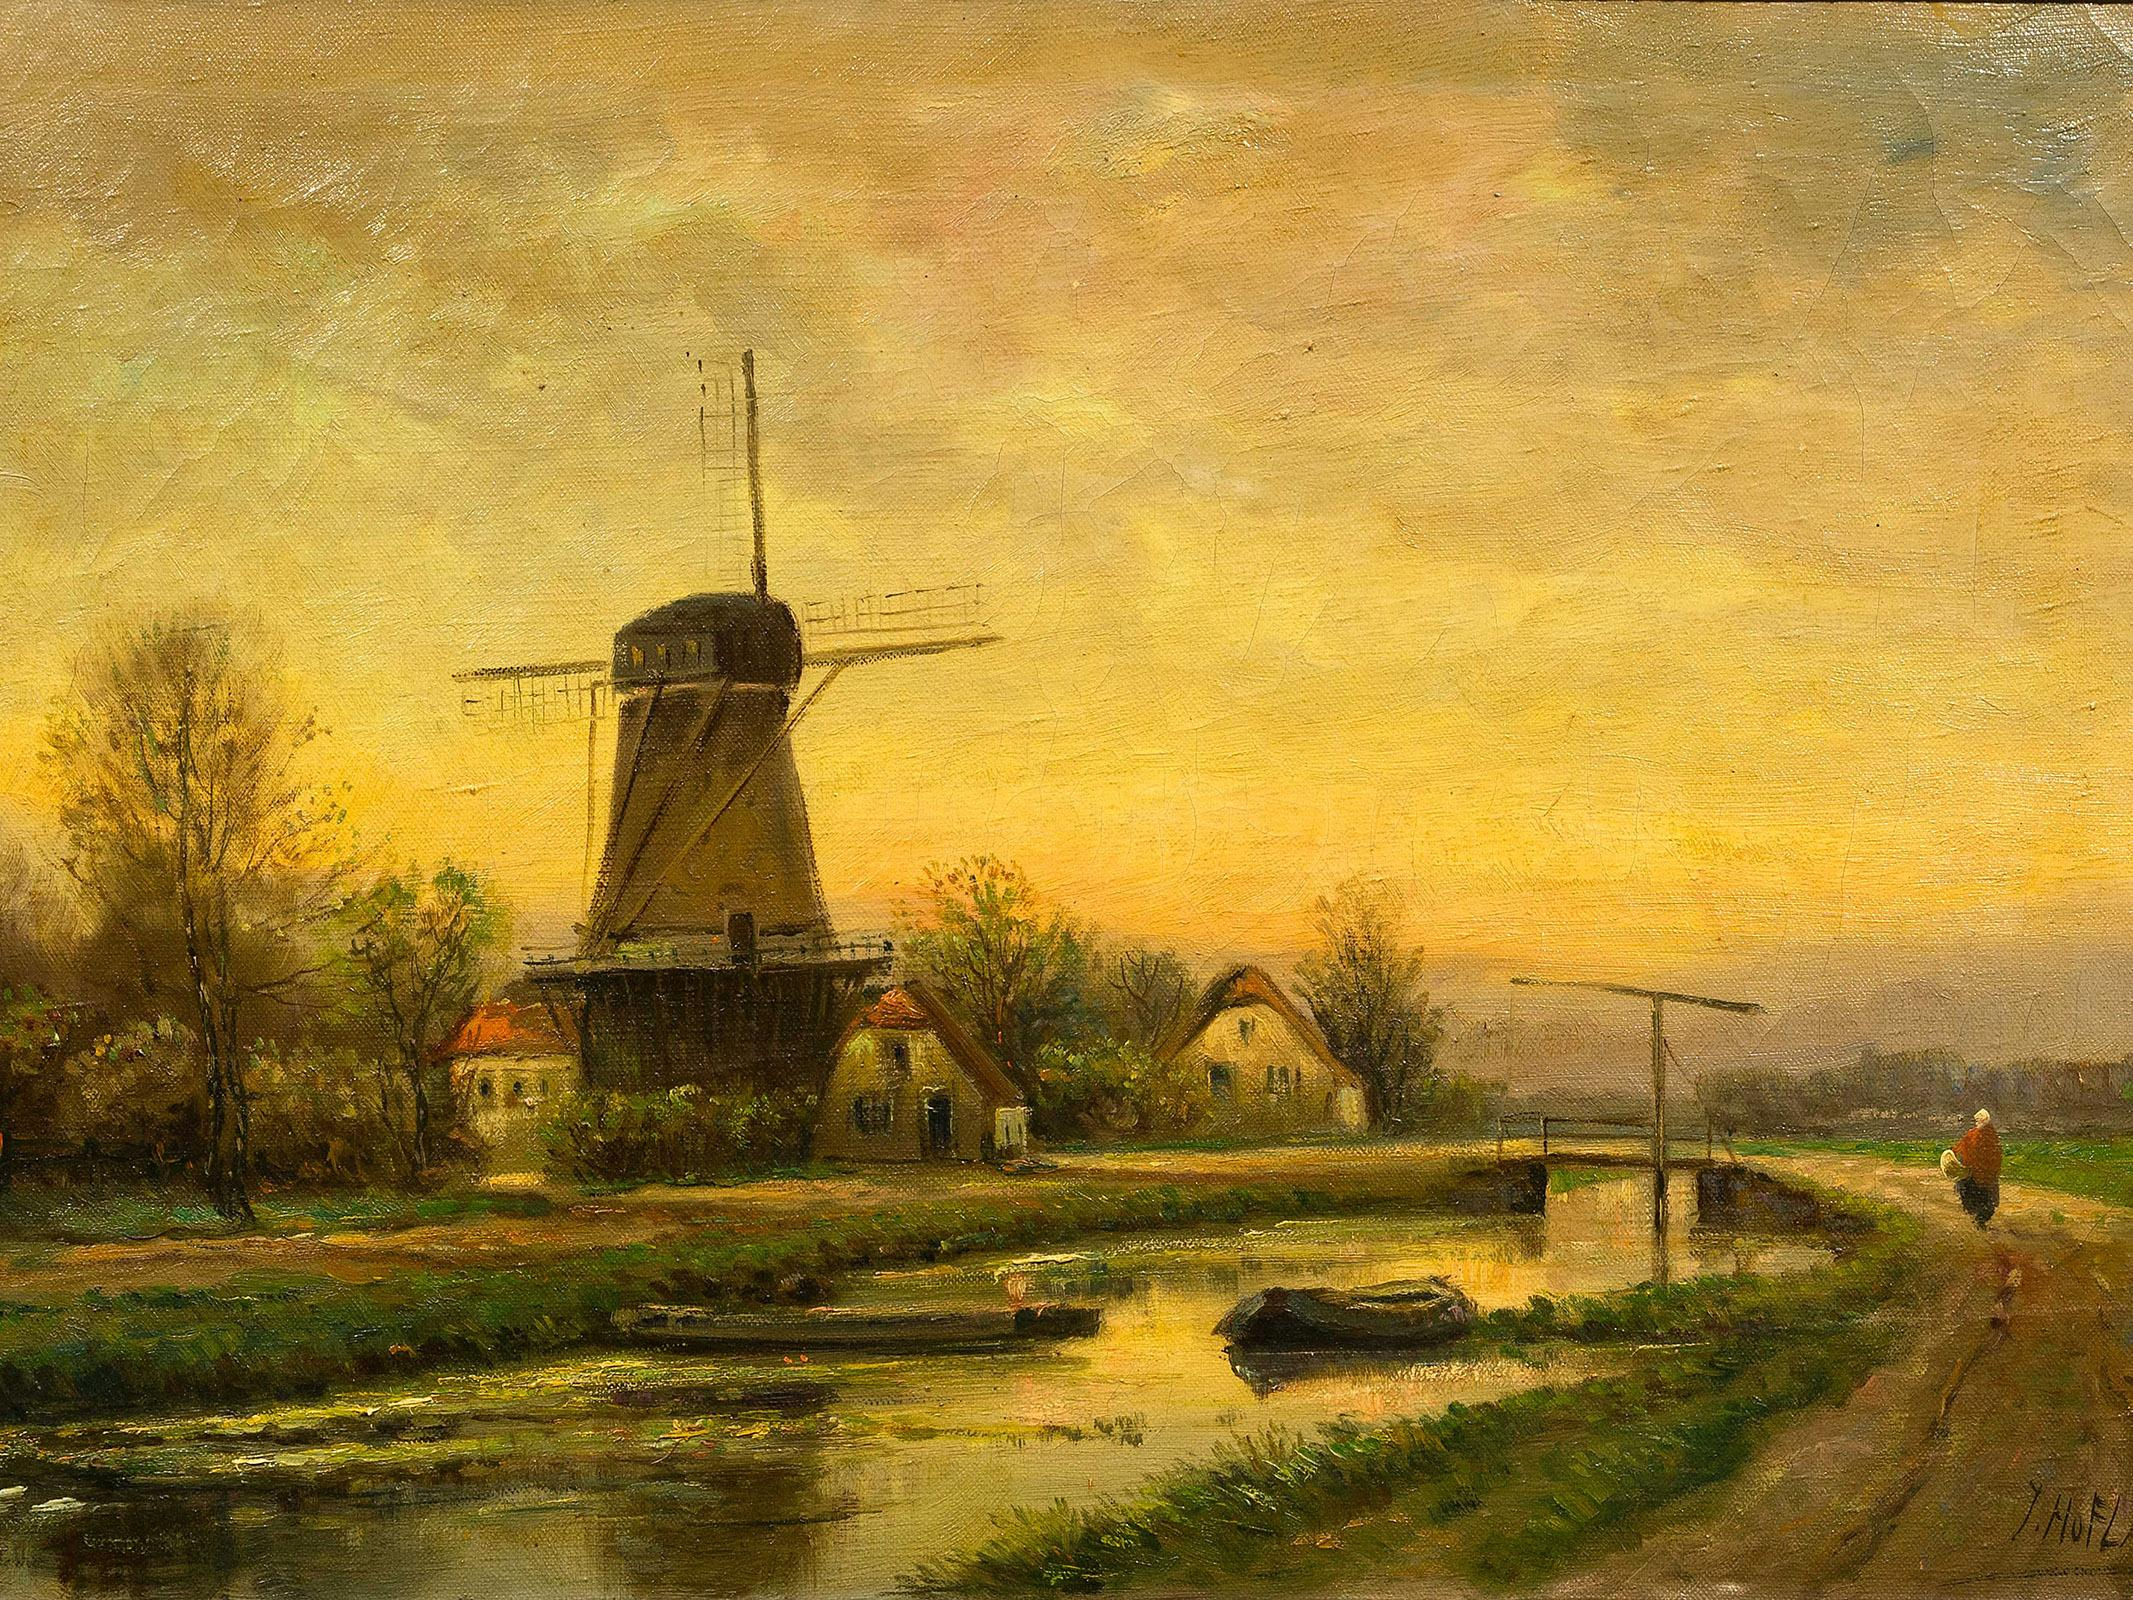 Thomas Hofland (Dutch 1777 - 1843) Oil, River Landscape with Figure & Windmill, Signed, 39 x 58